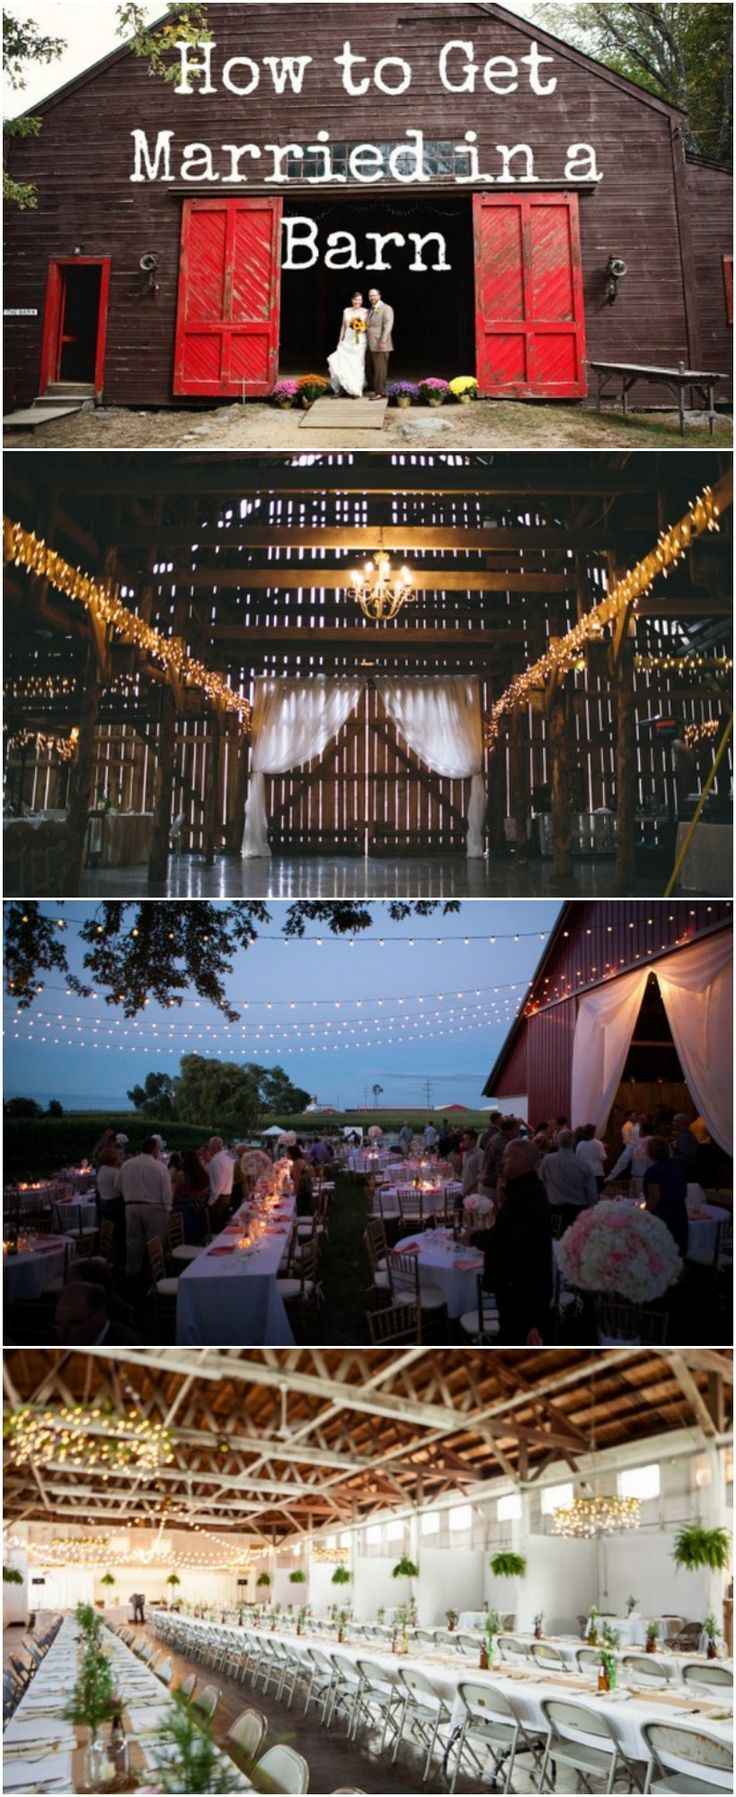 Great tips on barn weddings!